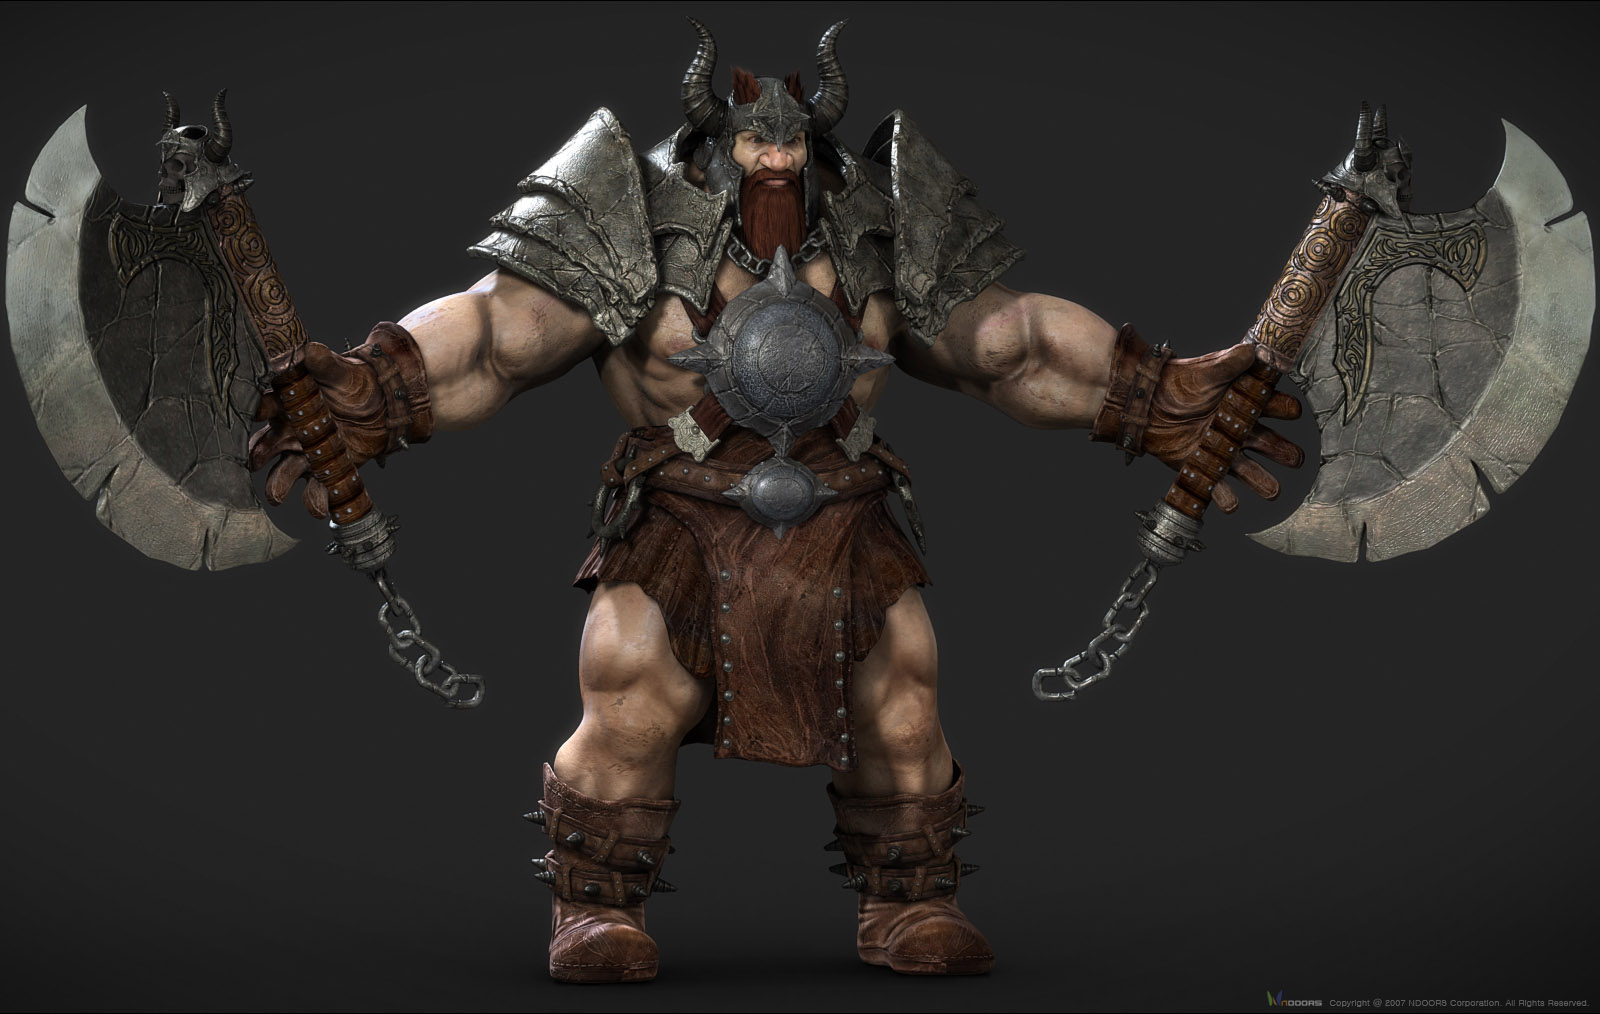 002_Viking_Full_CP_300.JPG